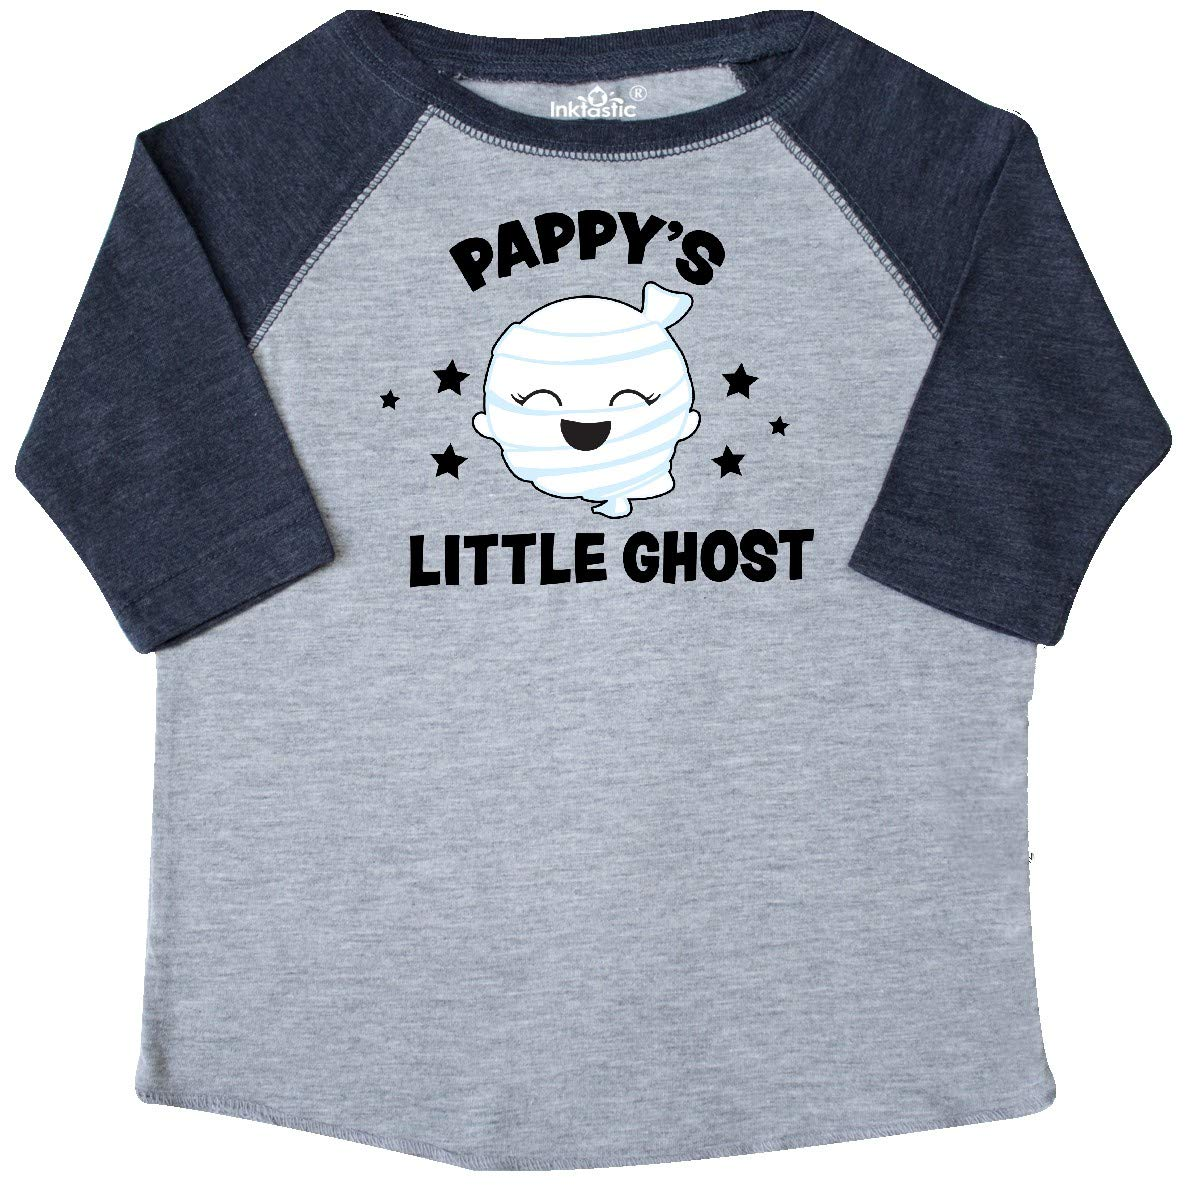 inktastic Cute Pappys Little Ghost with Stars Toddler T-Shirt